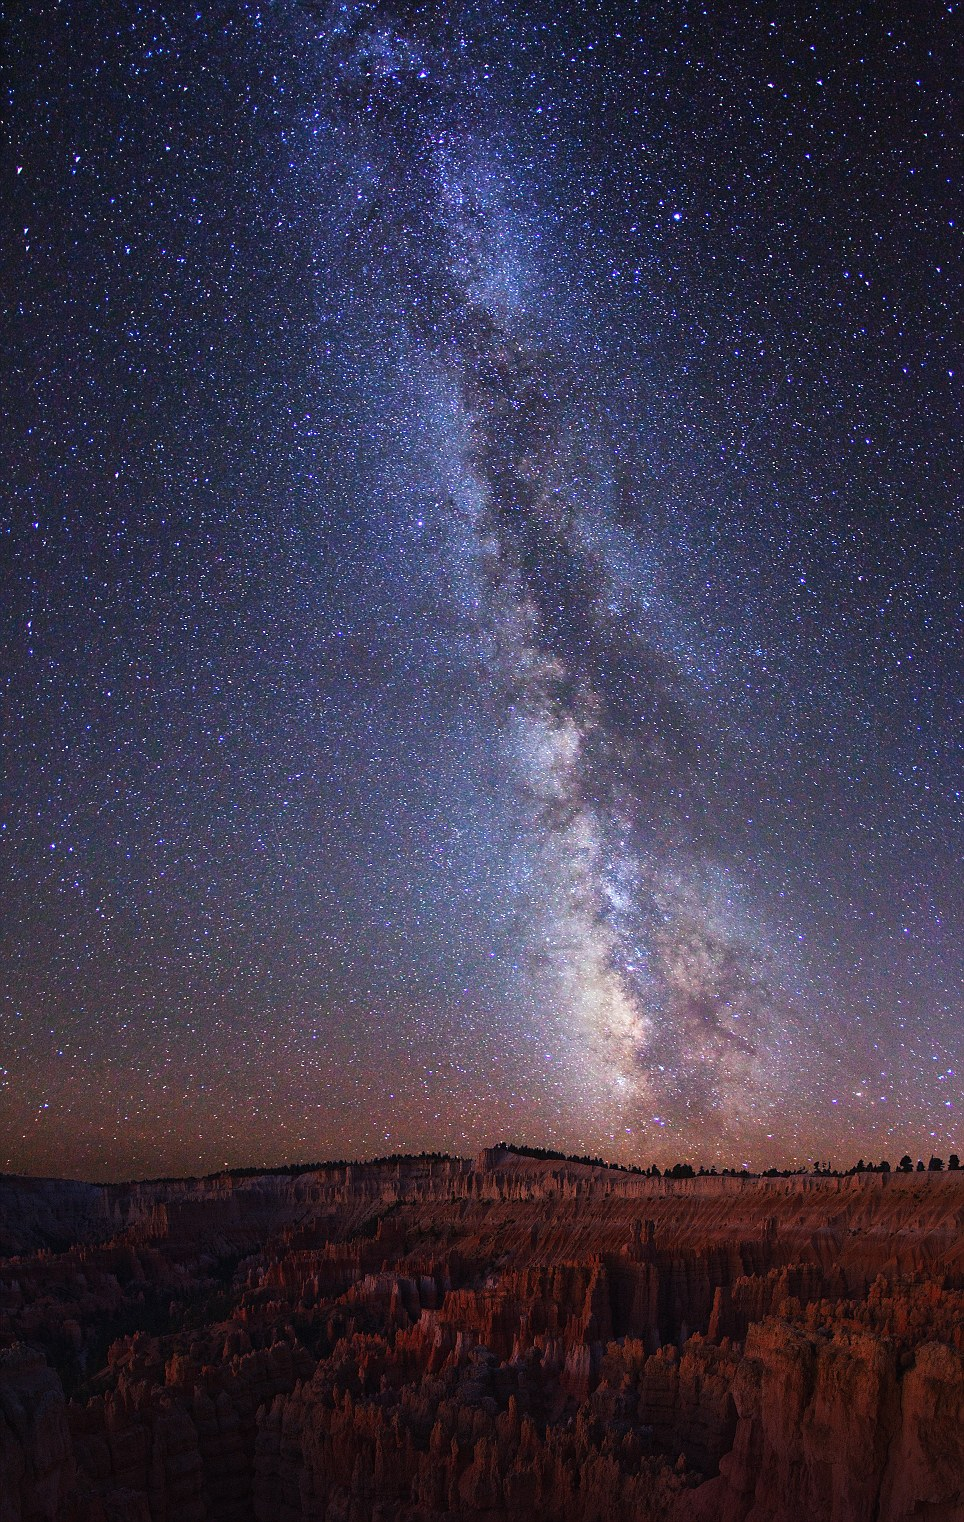 Milk Way Seen On www.coolpicturegallery.us